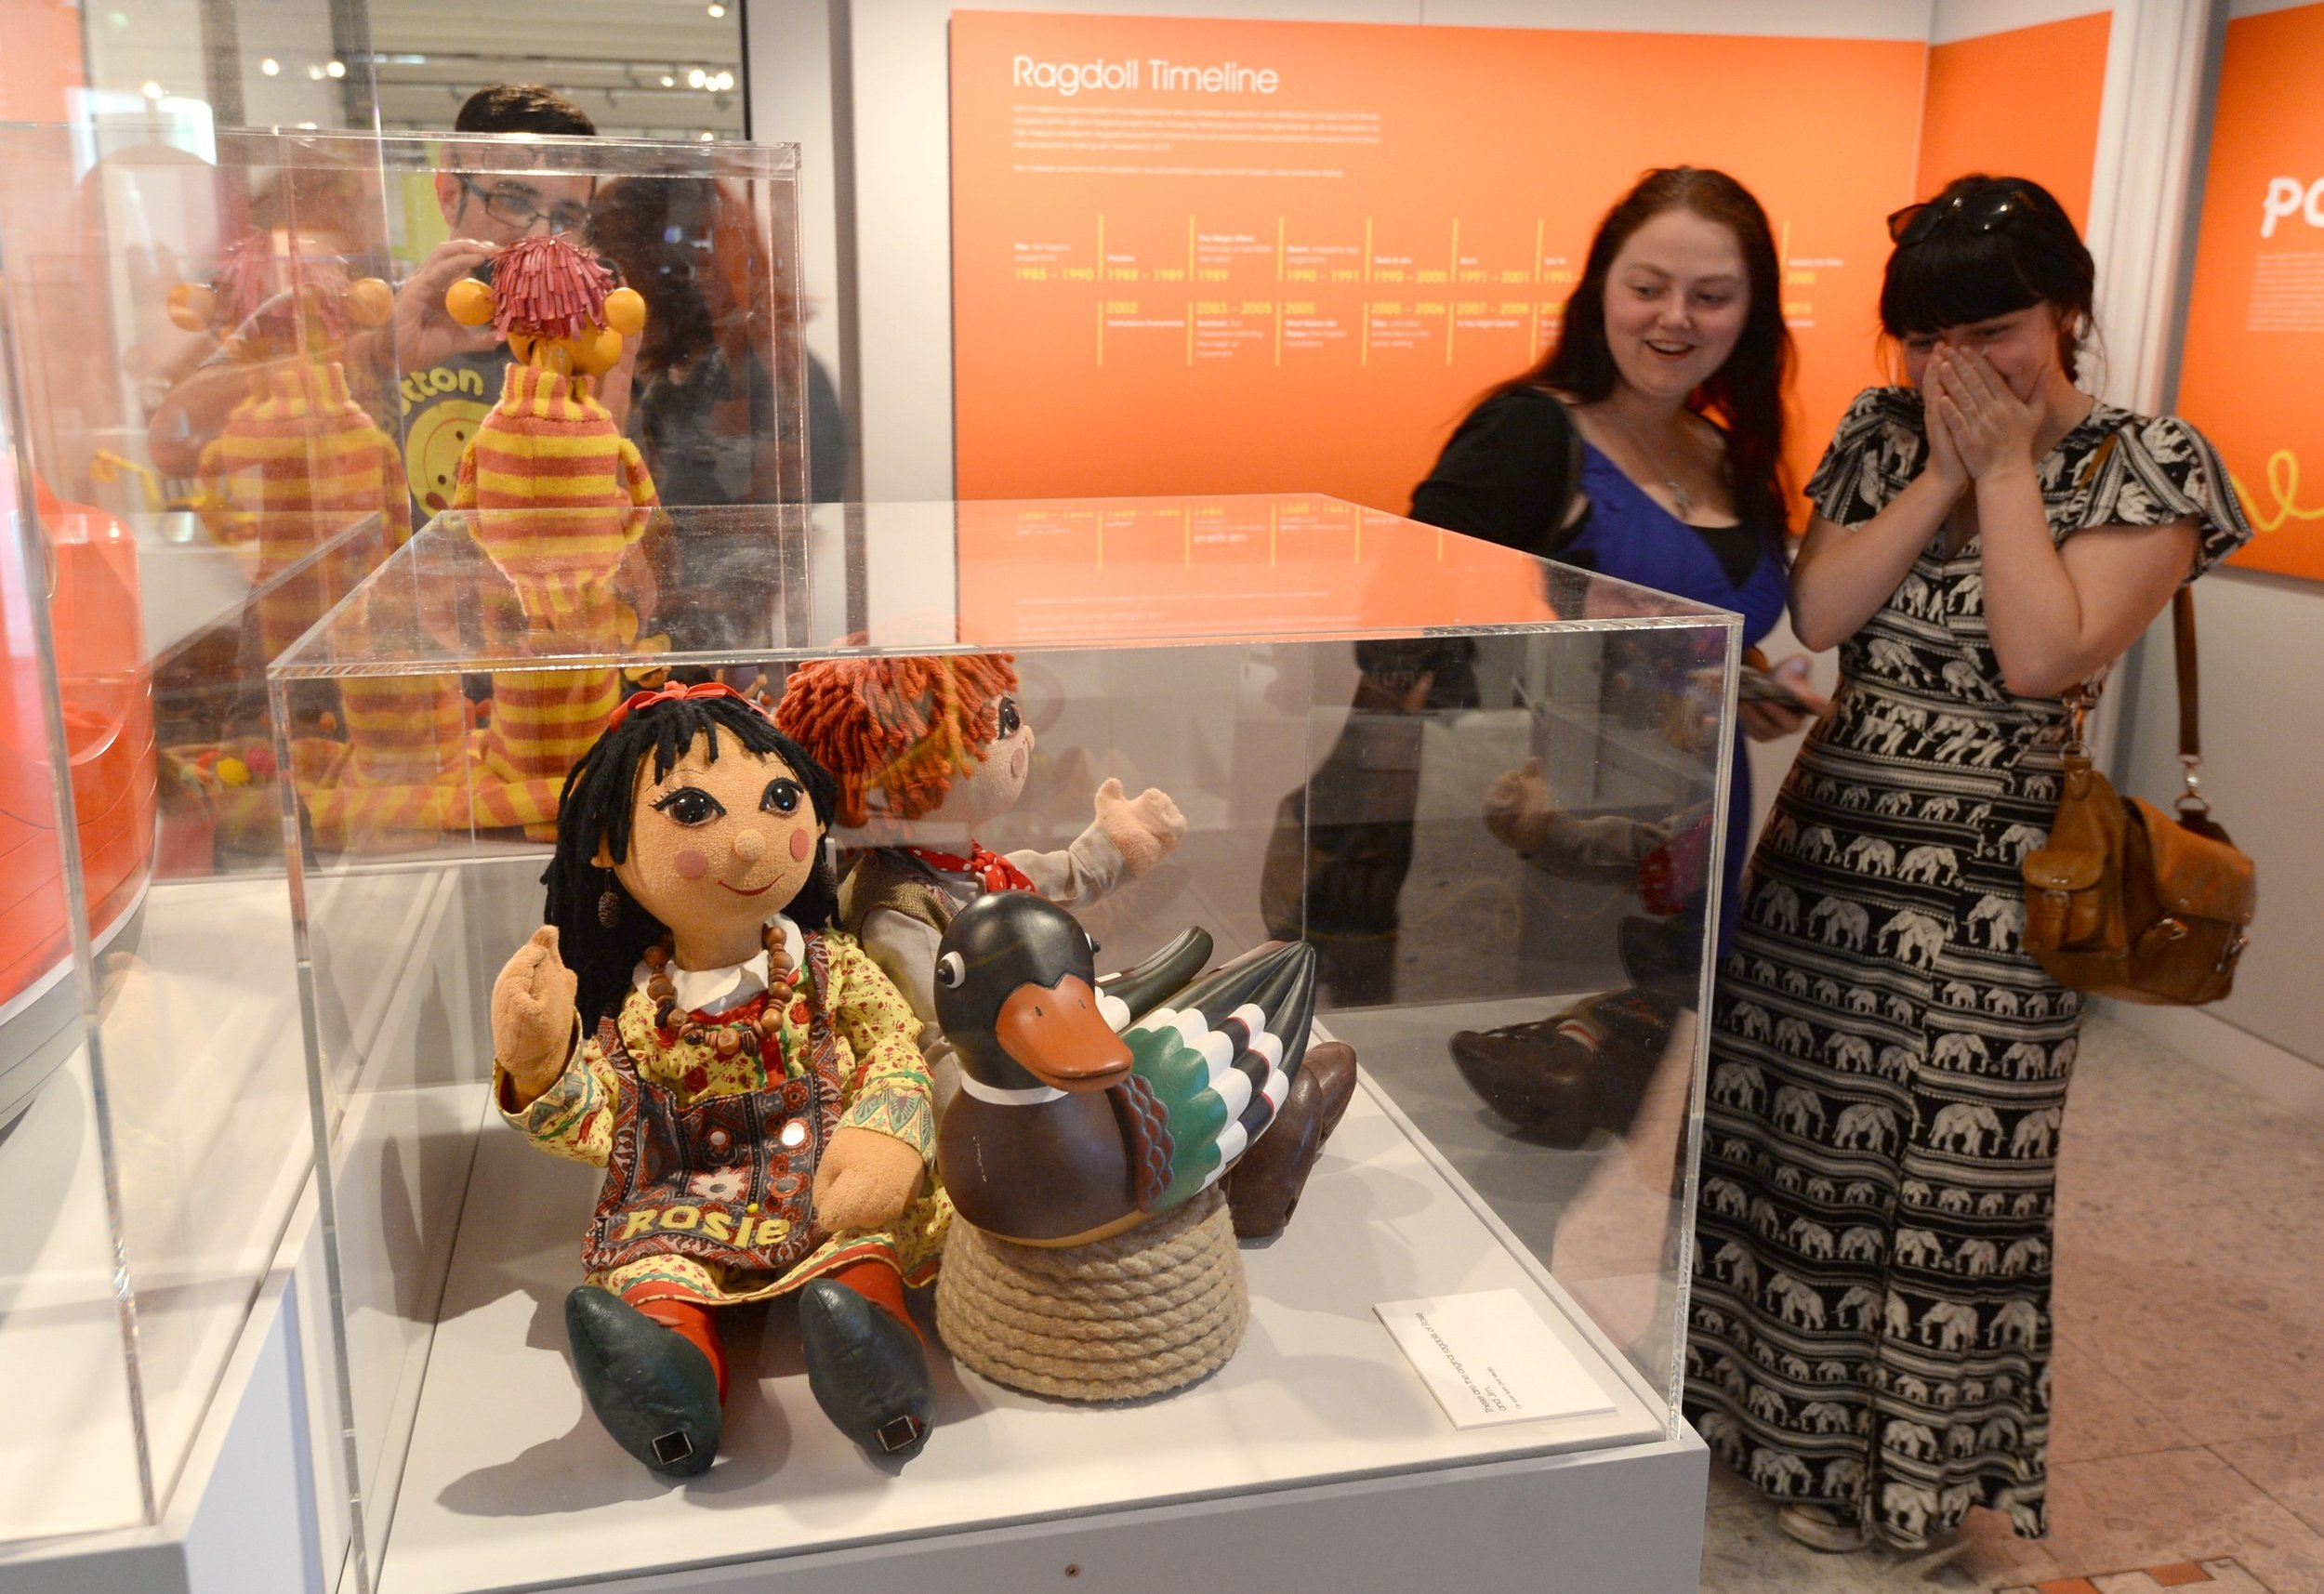 Fig. 2 - Visitors meet Rosie and Jim at The Story of Children's Television exhibition.